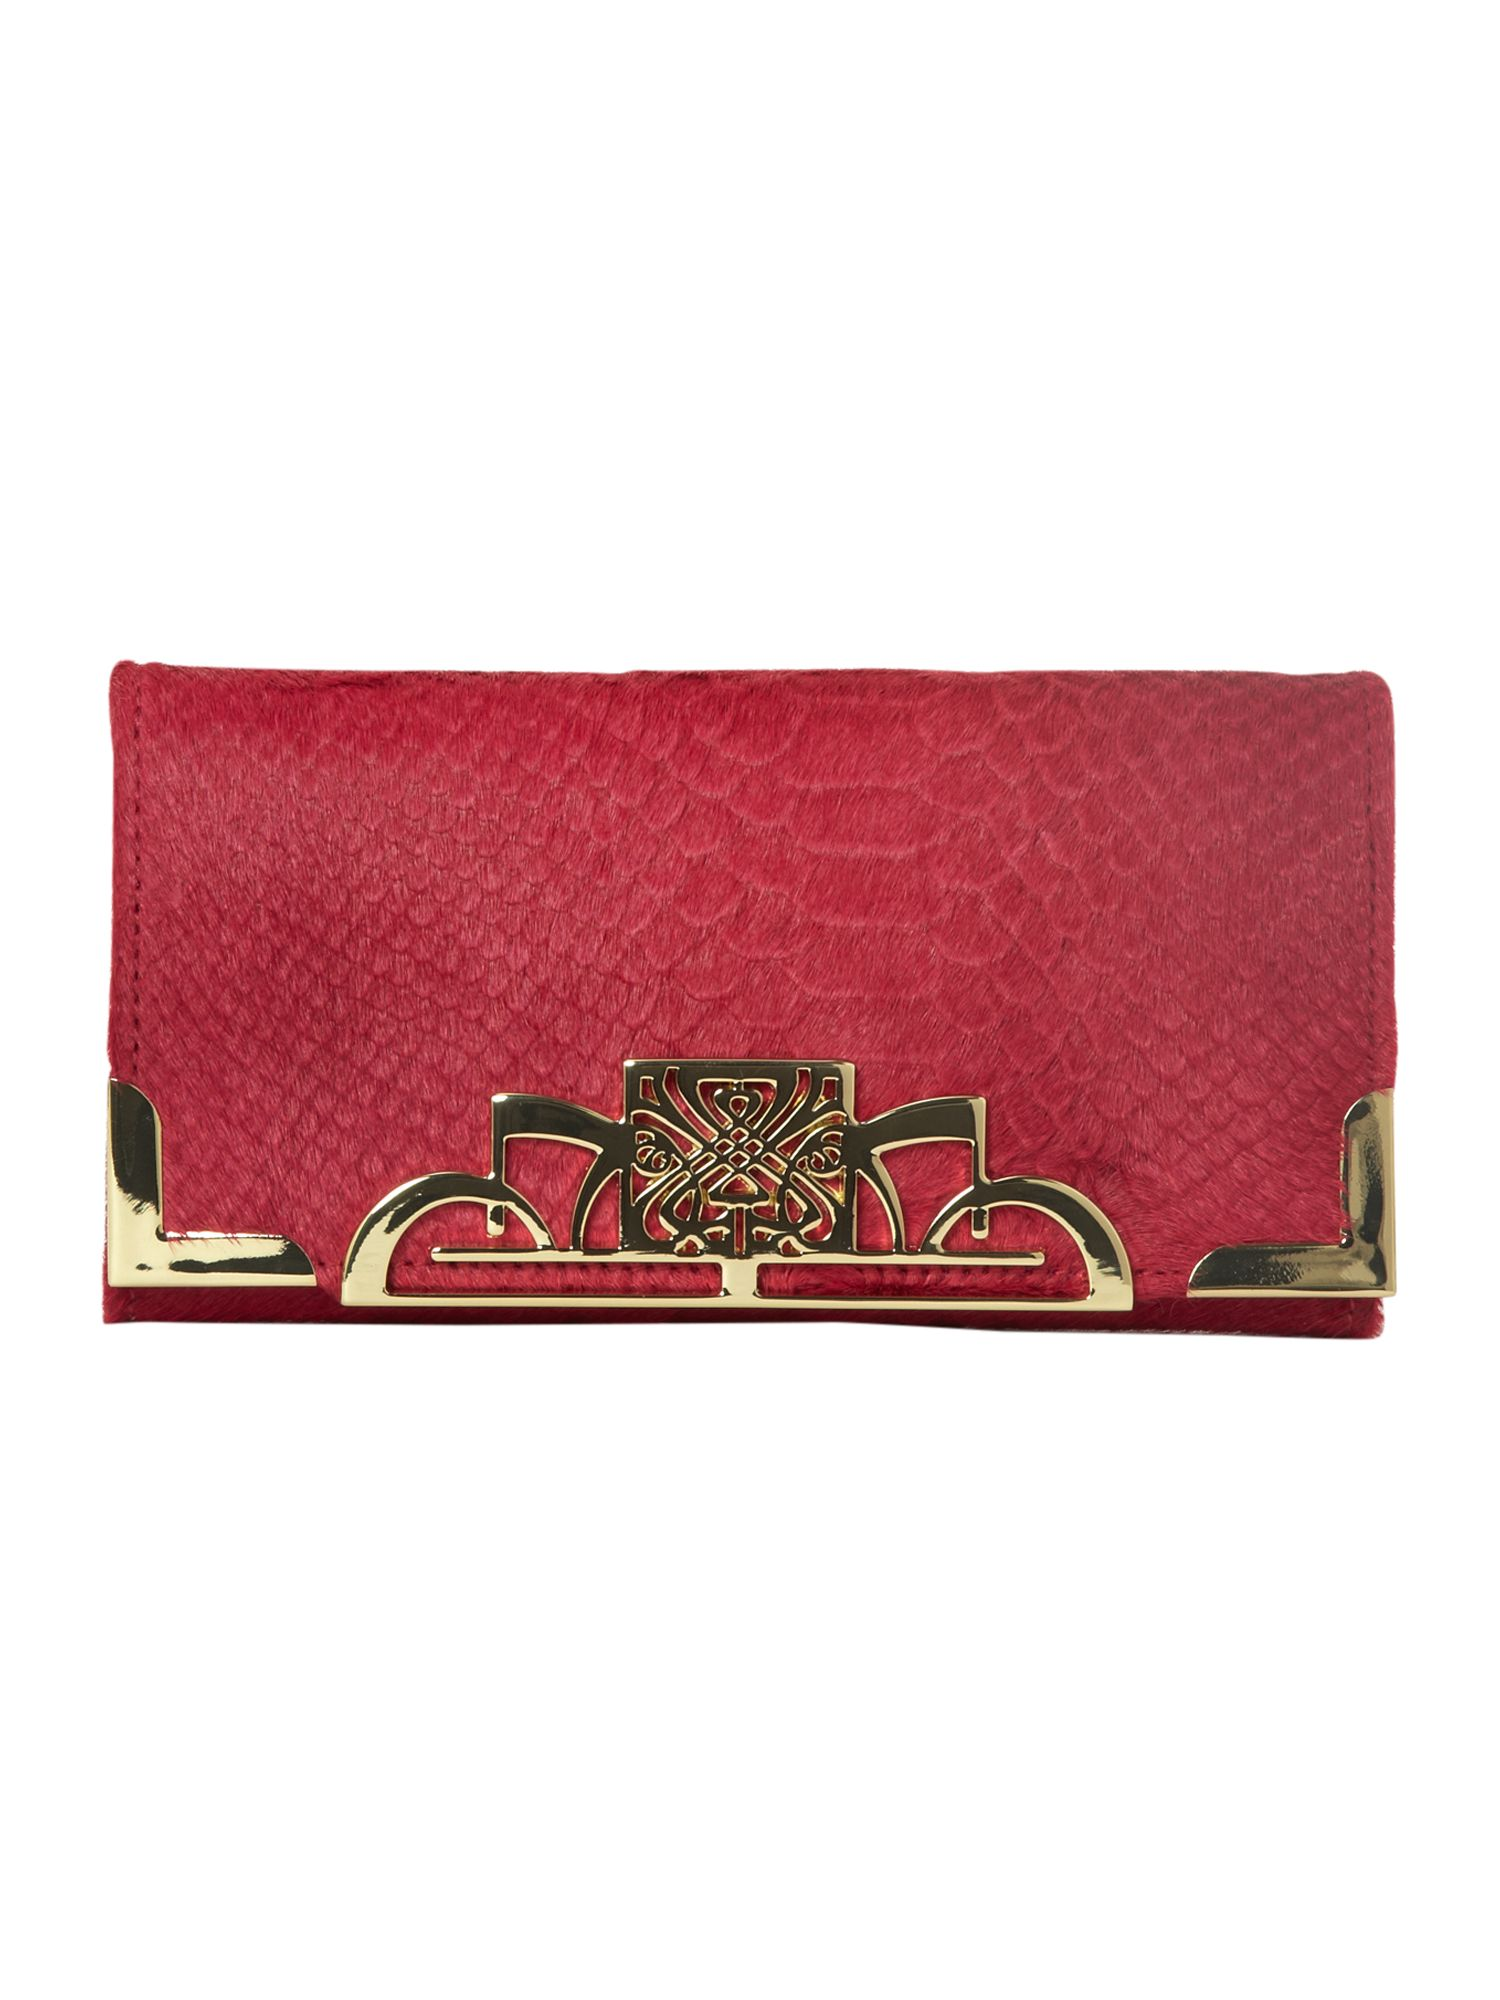 Art deco purse